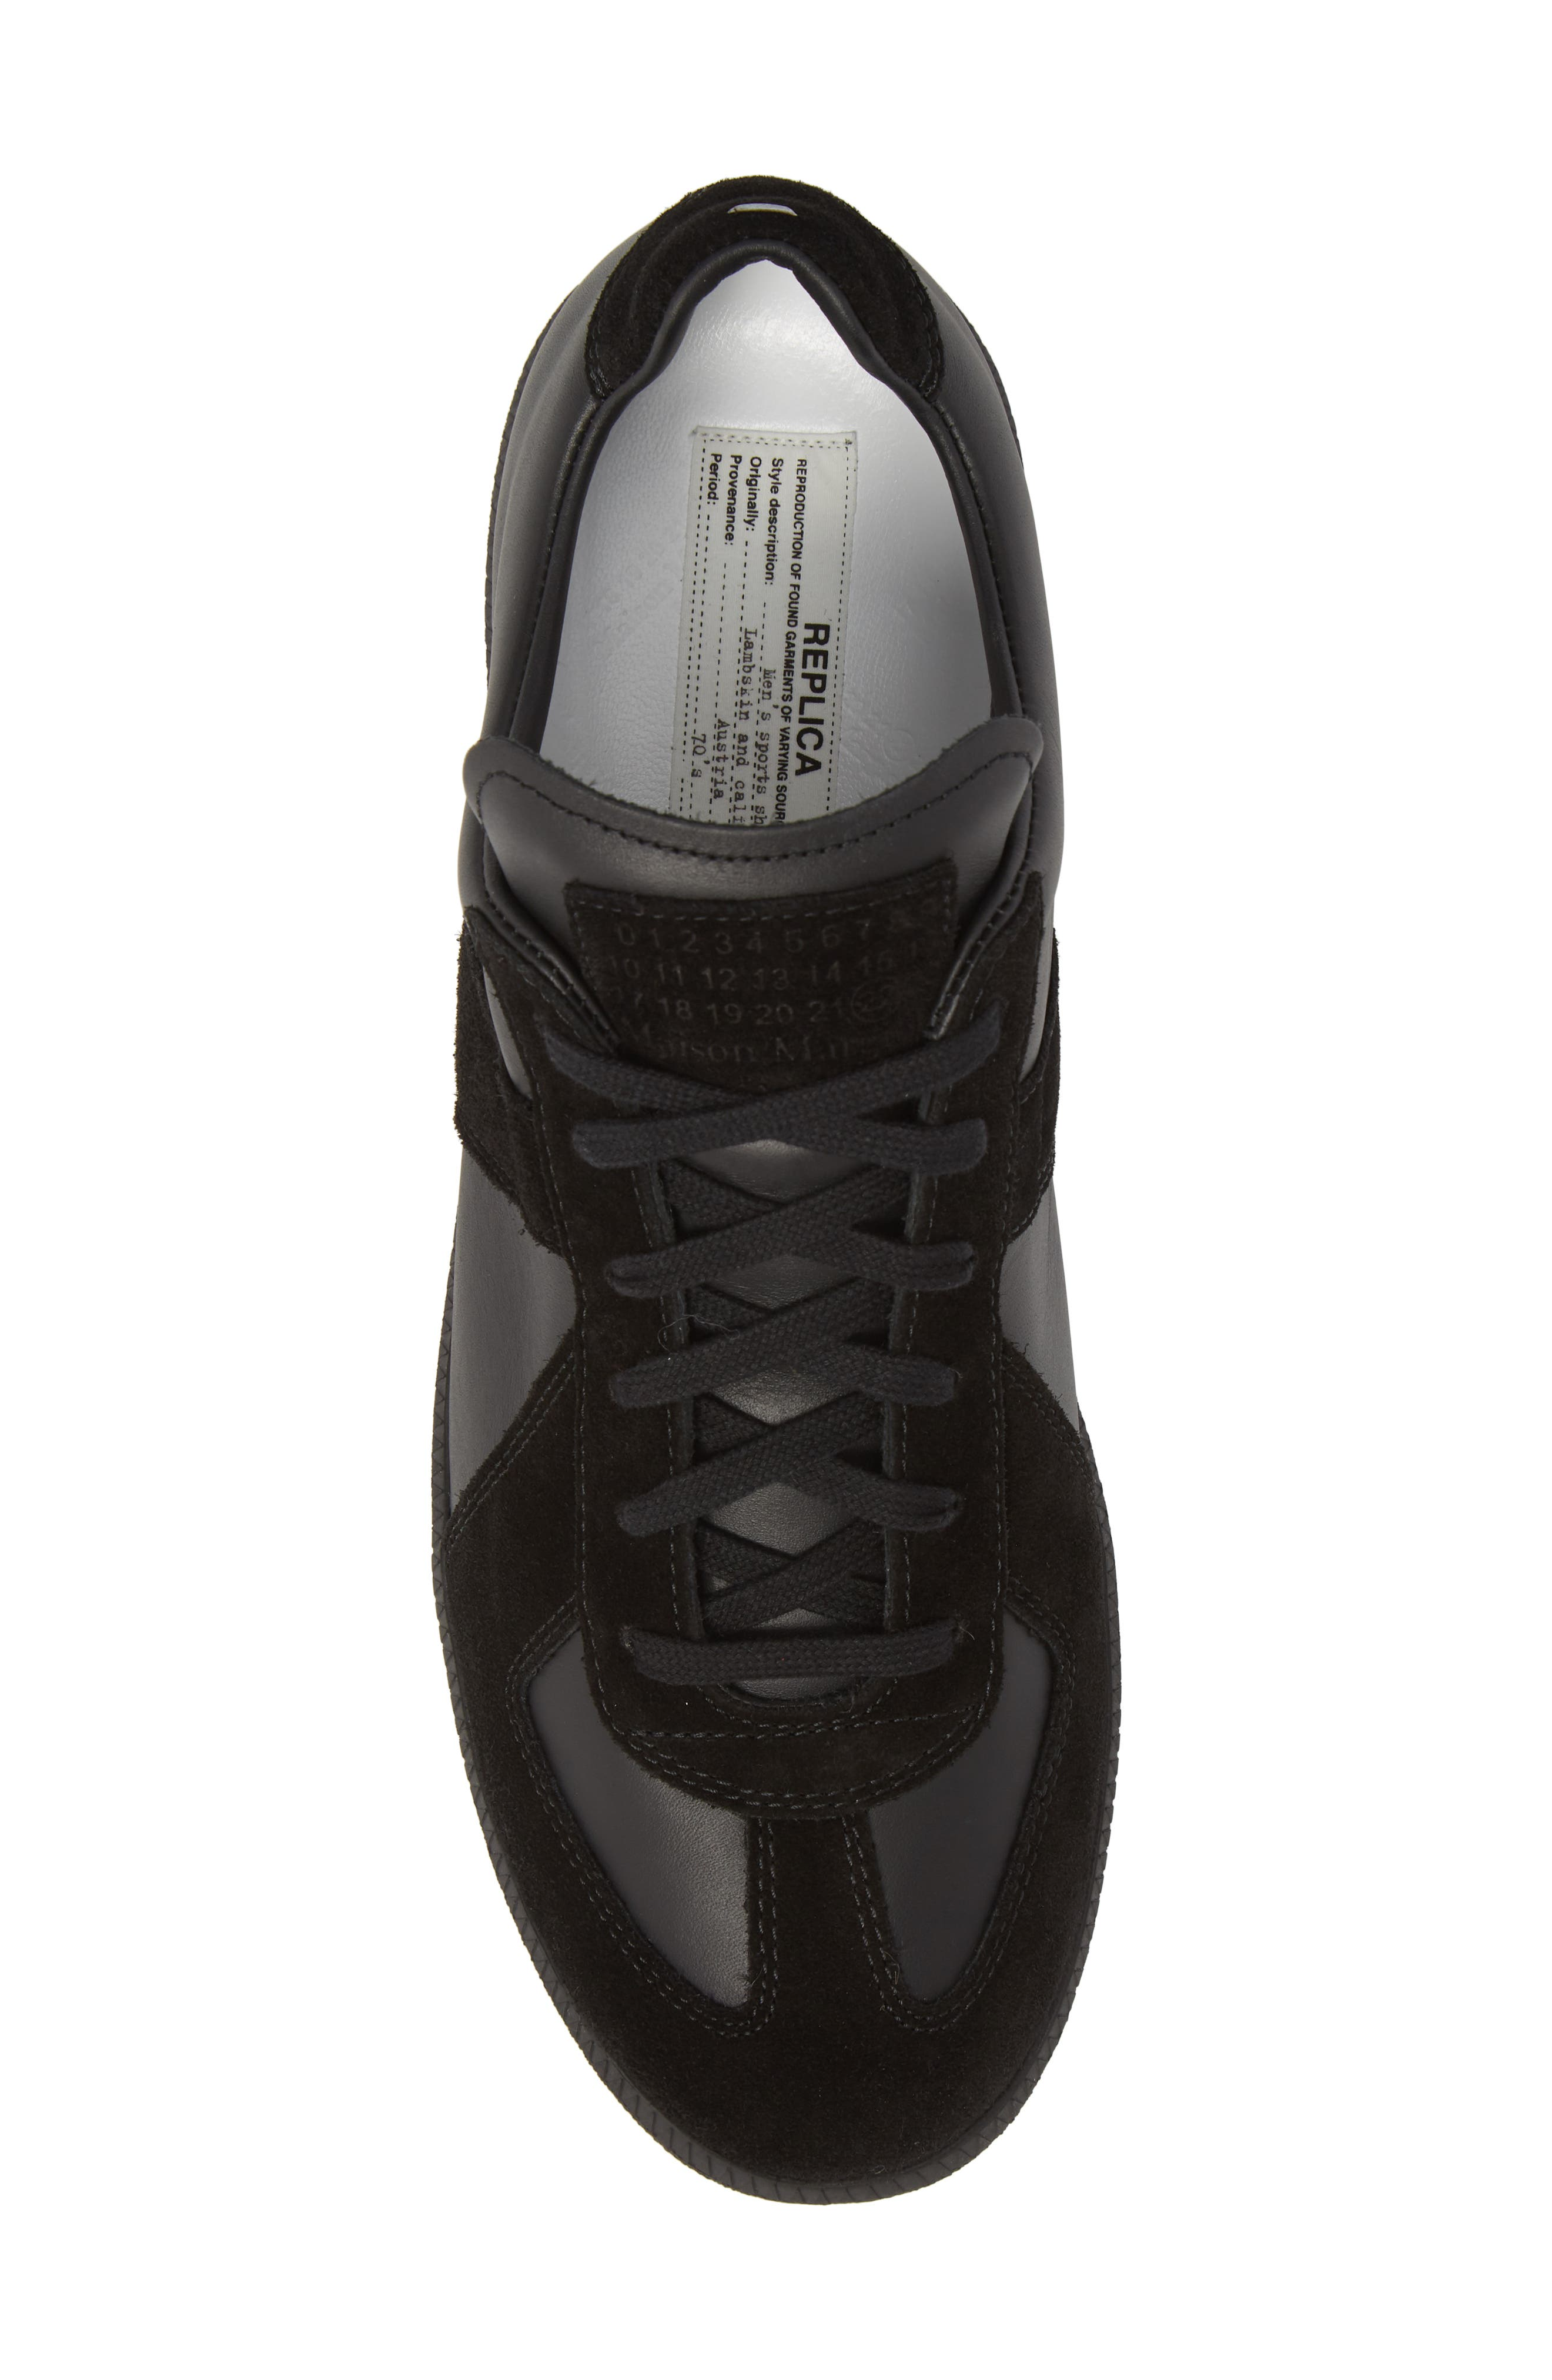 Maison Margiela Replica Low Top Sneaker,                             Alternate thumbnail 5, color,                             BLACK